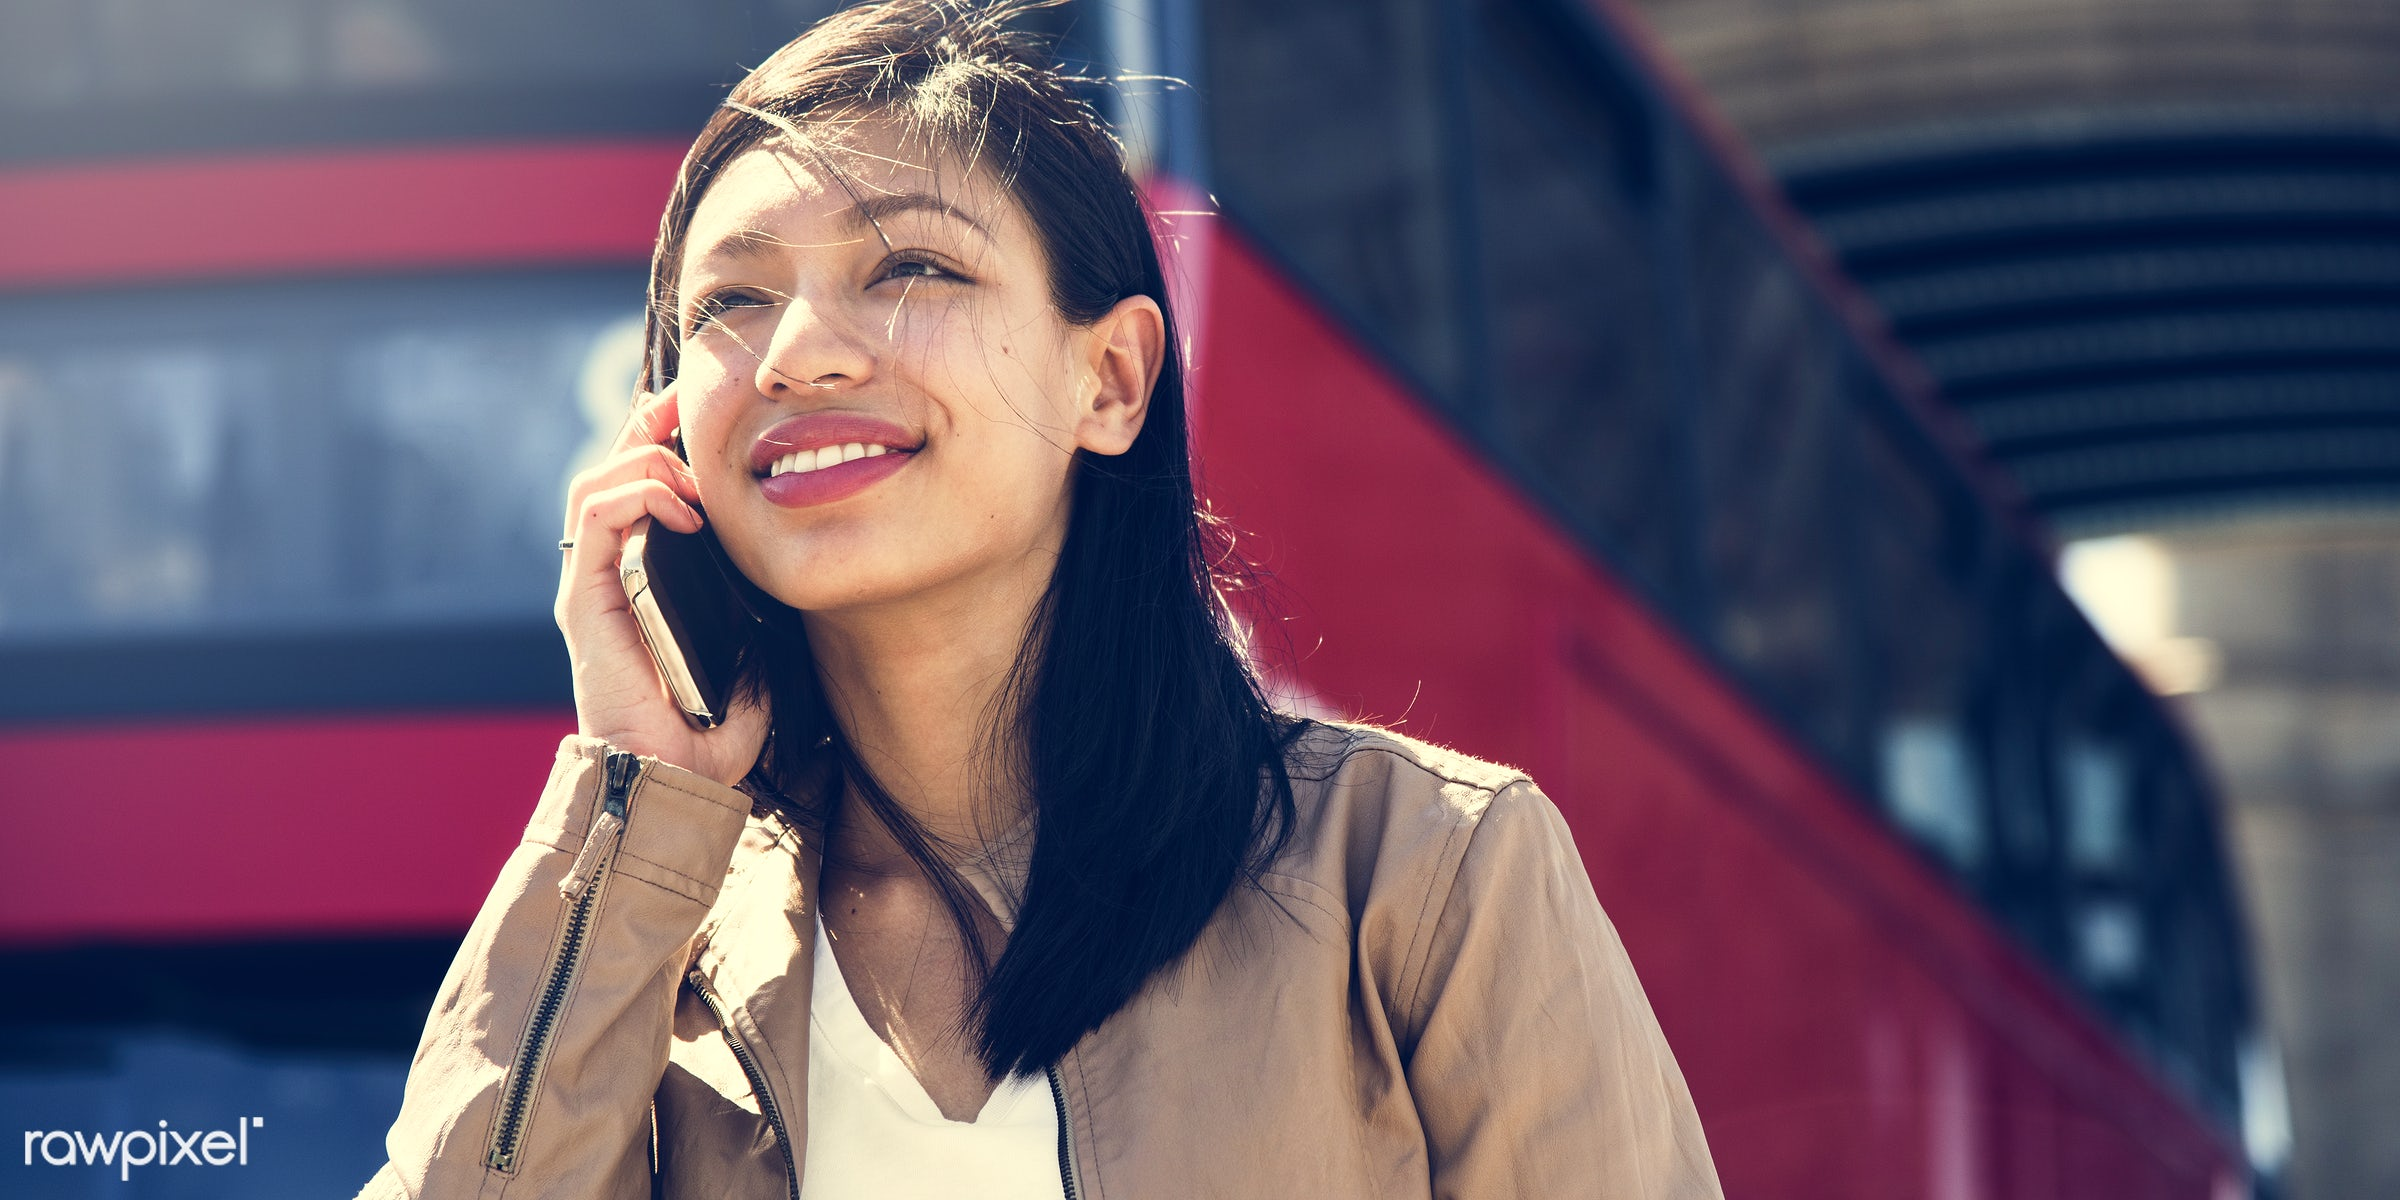 asian ethnicity, attractive, beautiful, beauty, bus, call, calling, candid, casual, cheerful, city, conversation, device,...